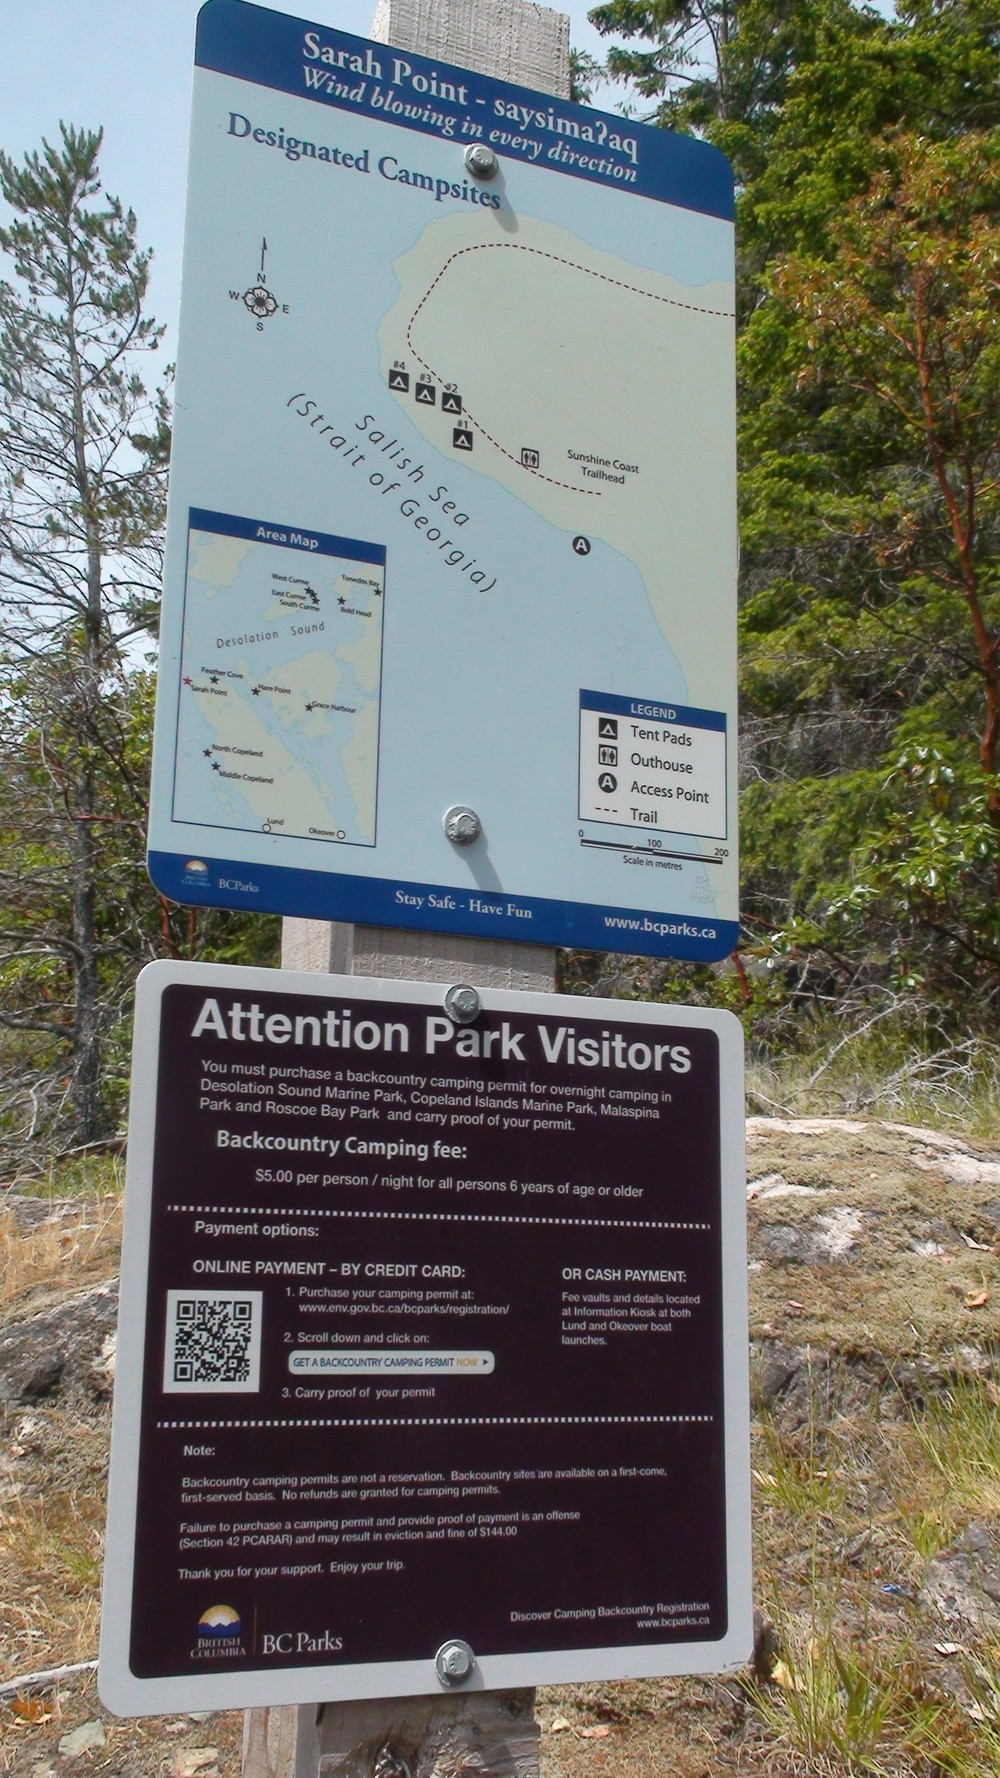 Sign at Sarah Point